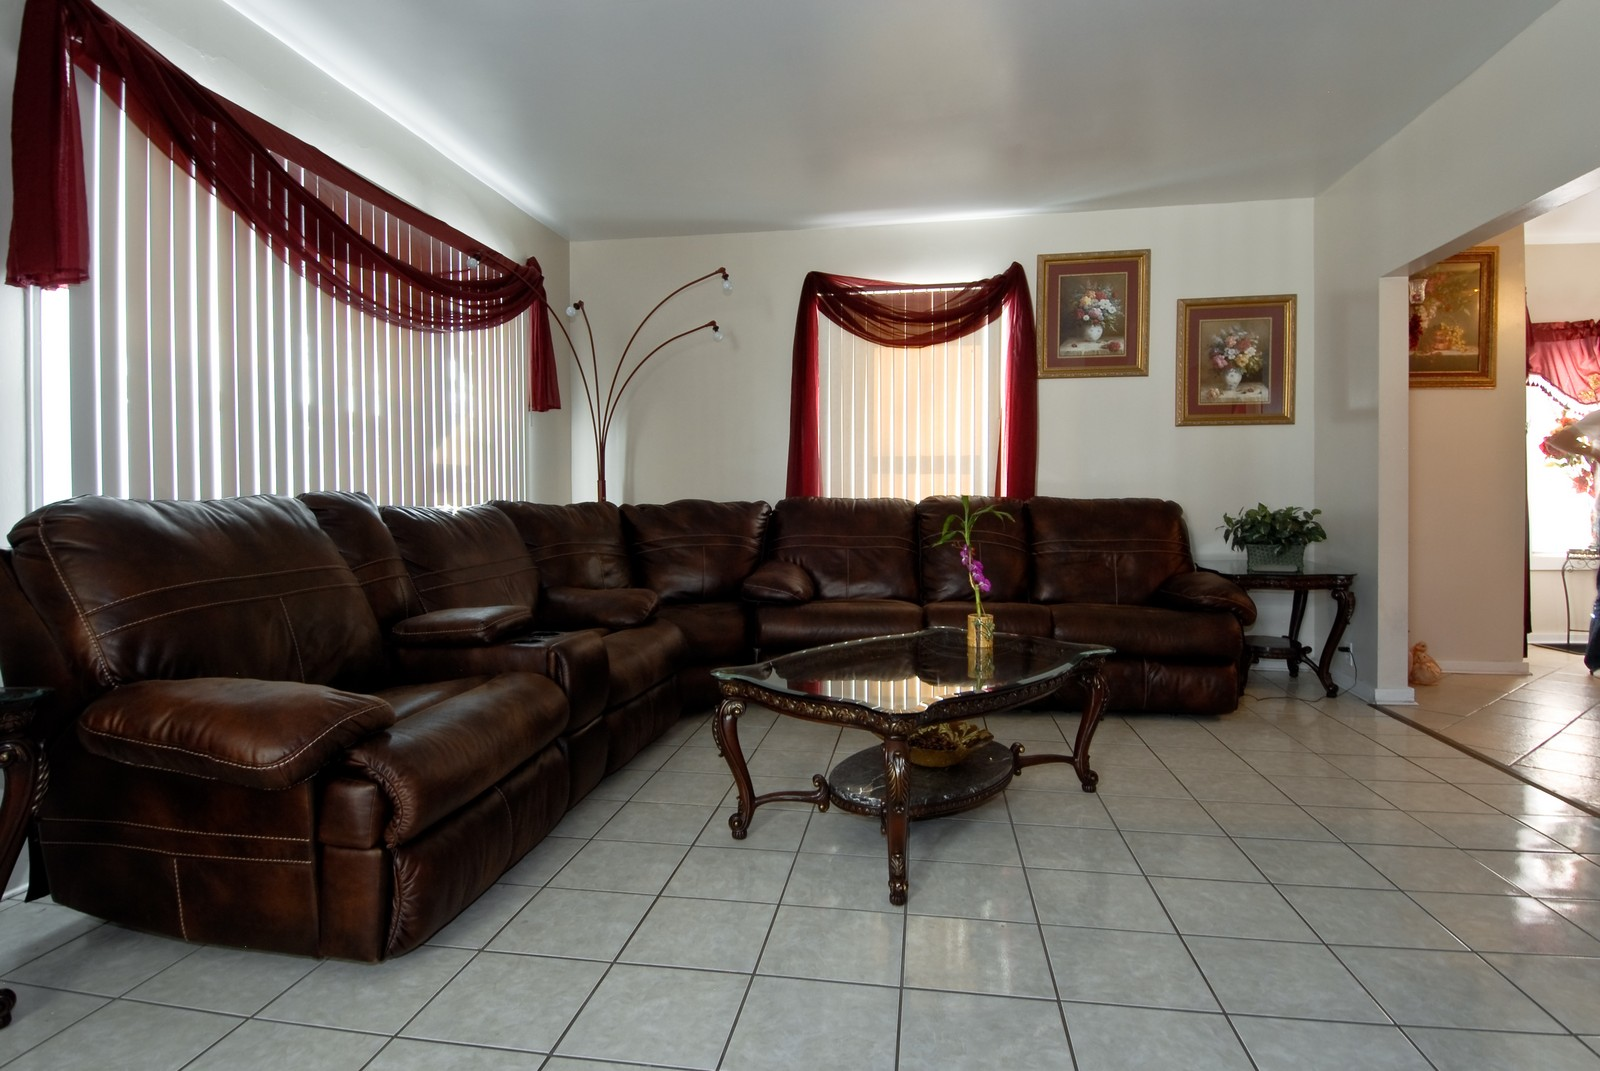 Real Estate Photography - 569 Woodlawn Ave, Aurora, IL, 60505 - Living Room